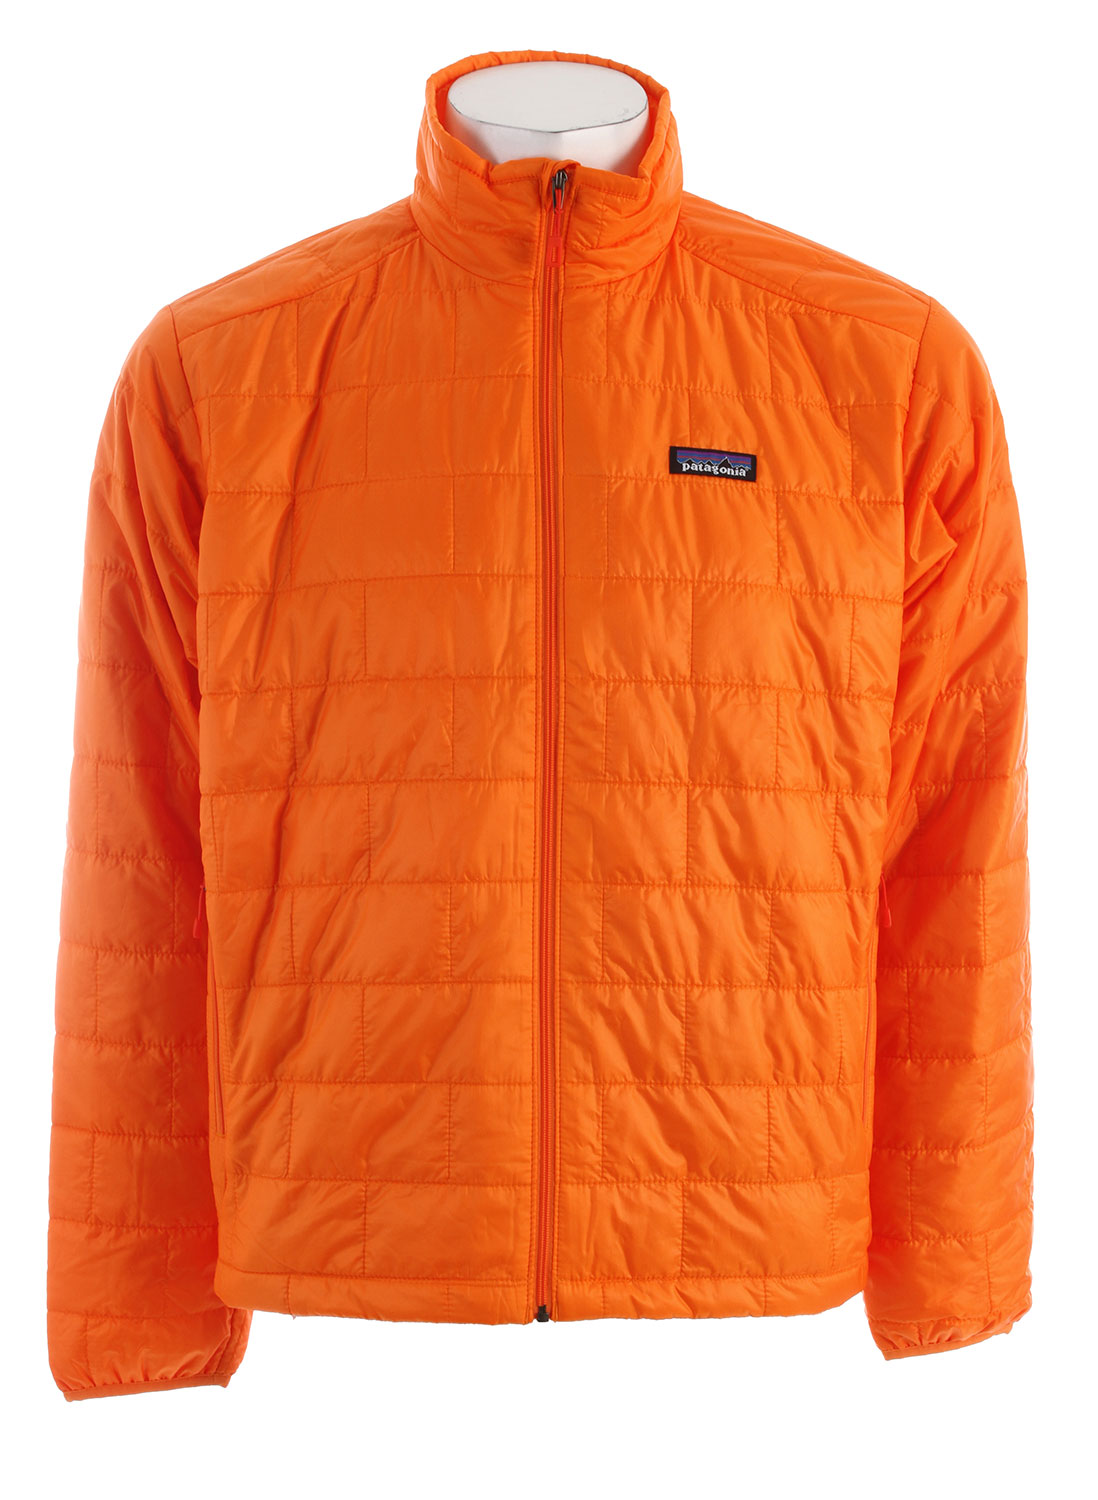 Windproof and water-resistant, the full-zip Nano Puff Jacket is made with warm, incredibly lightweight, highly compressible 60-g PrimaLoft One insulation, and is ideal as an insulating layer or outerwear in cold climates. FABRIC: Shell: 1-oz 15-denier 100% recycled polyester. Insulation: 60-g PrimaLoft One 100% polyester (70% recycled). Lining: 1.4-oz 22-denier 100% recycled polyester. Shell and lining have a Deluge DWR (durable water repellent) finishKey Features of the Patagonia Nano Puff Jacket: Regular fit Ultralight ripstop recycled polyester shell fabric has a Deluge DWR finish Lightweight 60-g PrimaLoft One insulation provides excellent warmth and compressibility Unique quilt pattern holds insulation in place for durability Zippered pockets: two handwarmers, one internal chest pocket (doubles as stuffsack) with a reinforced carabineer clip-in loop Dual-adjust drawcord hem seals out wind - $139.95